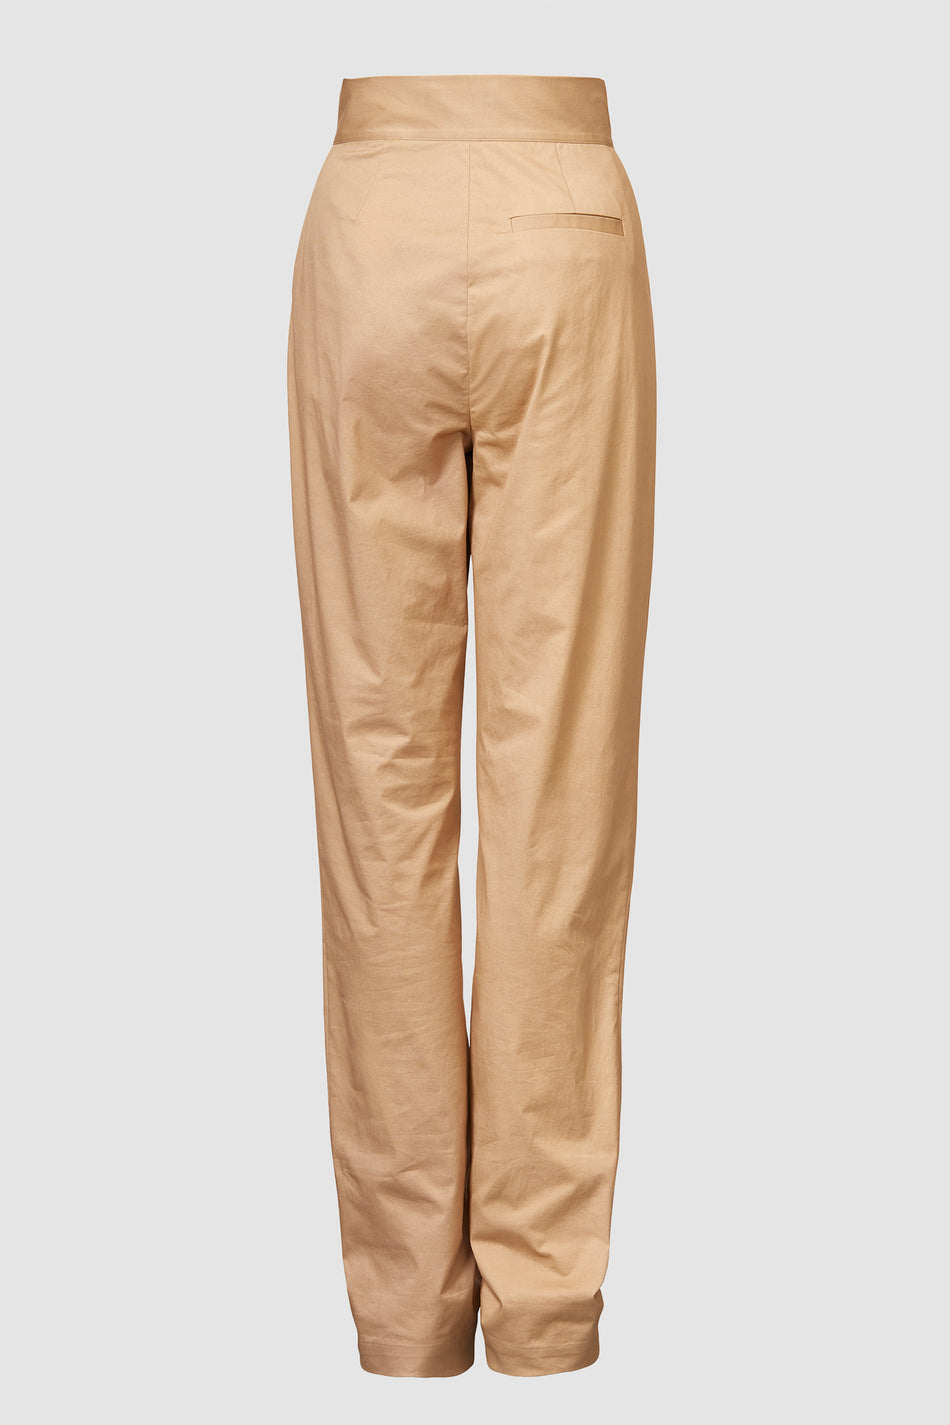 Tove Lourdes Cotton Trousers Sand